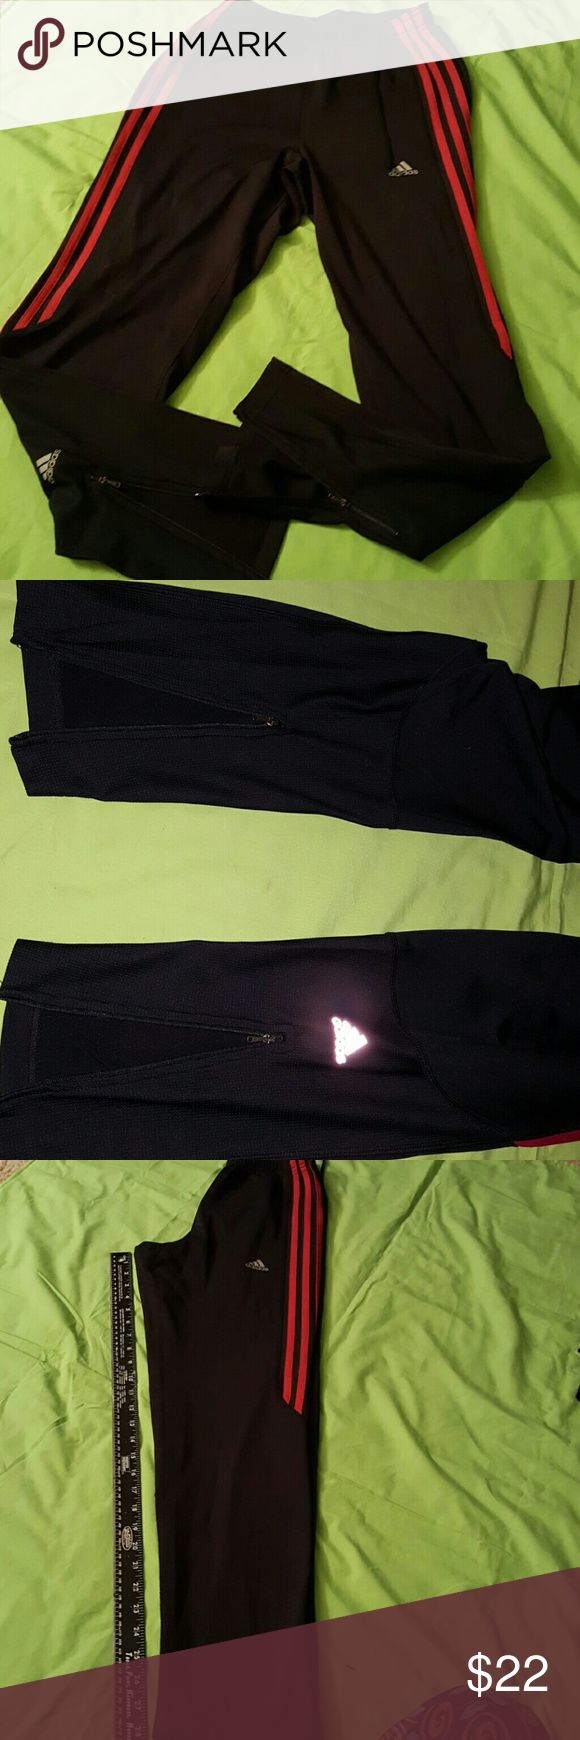 ADIDAS ATHLETIC PANTS SZ SMALL Ladies Adidas athletic pants, black with pink stripes, zipper ankle. EXCELLENT CONDITION Adidas Pants Track Pants & Joggers